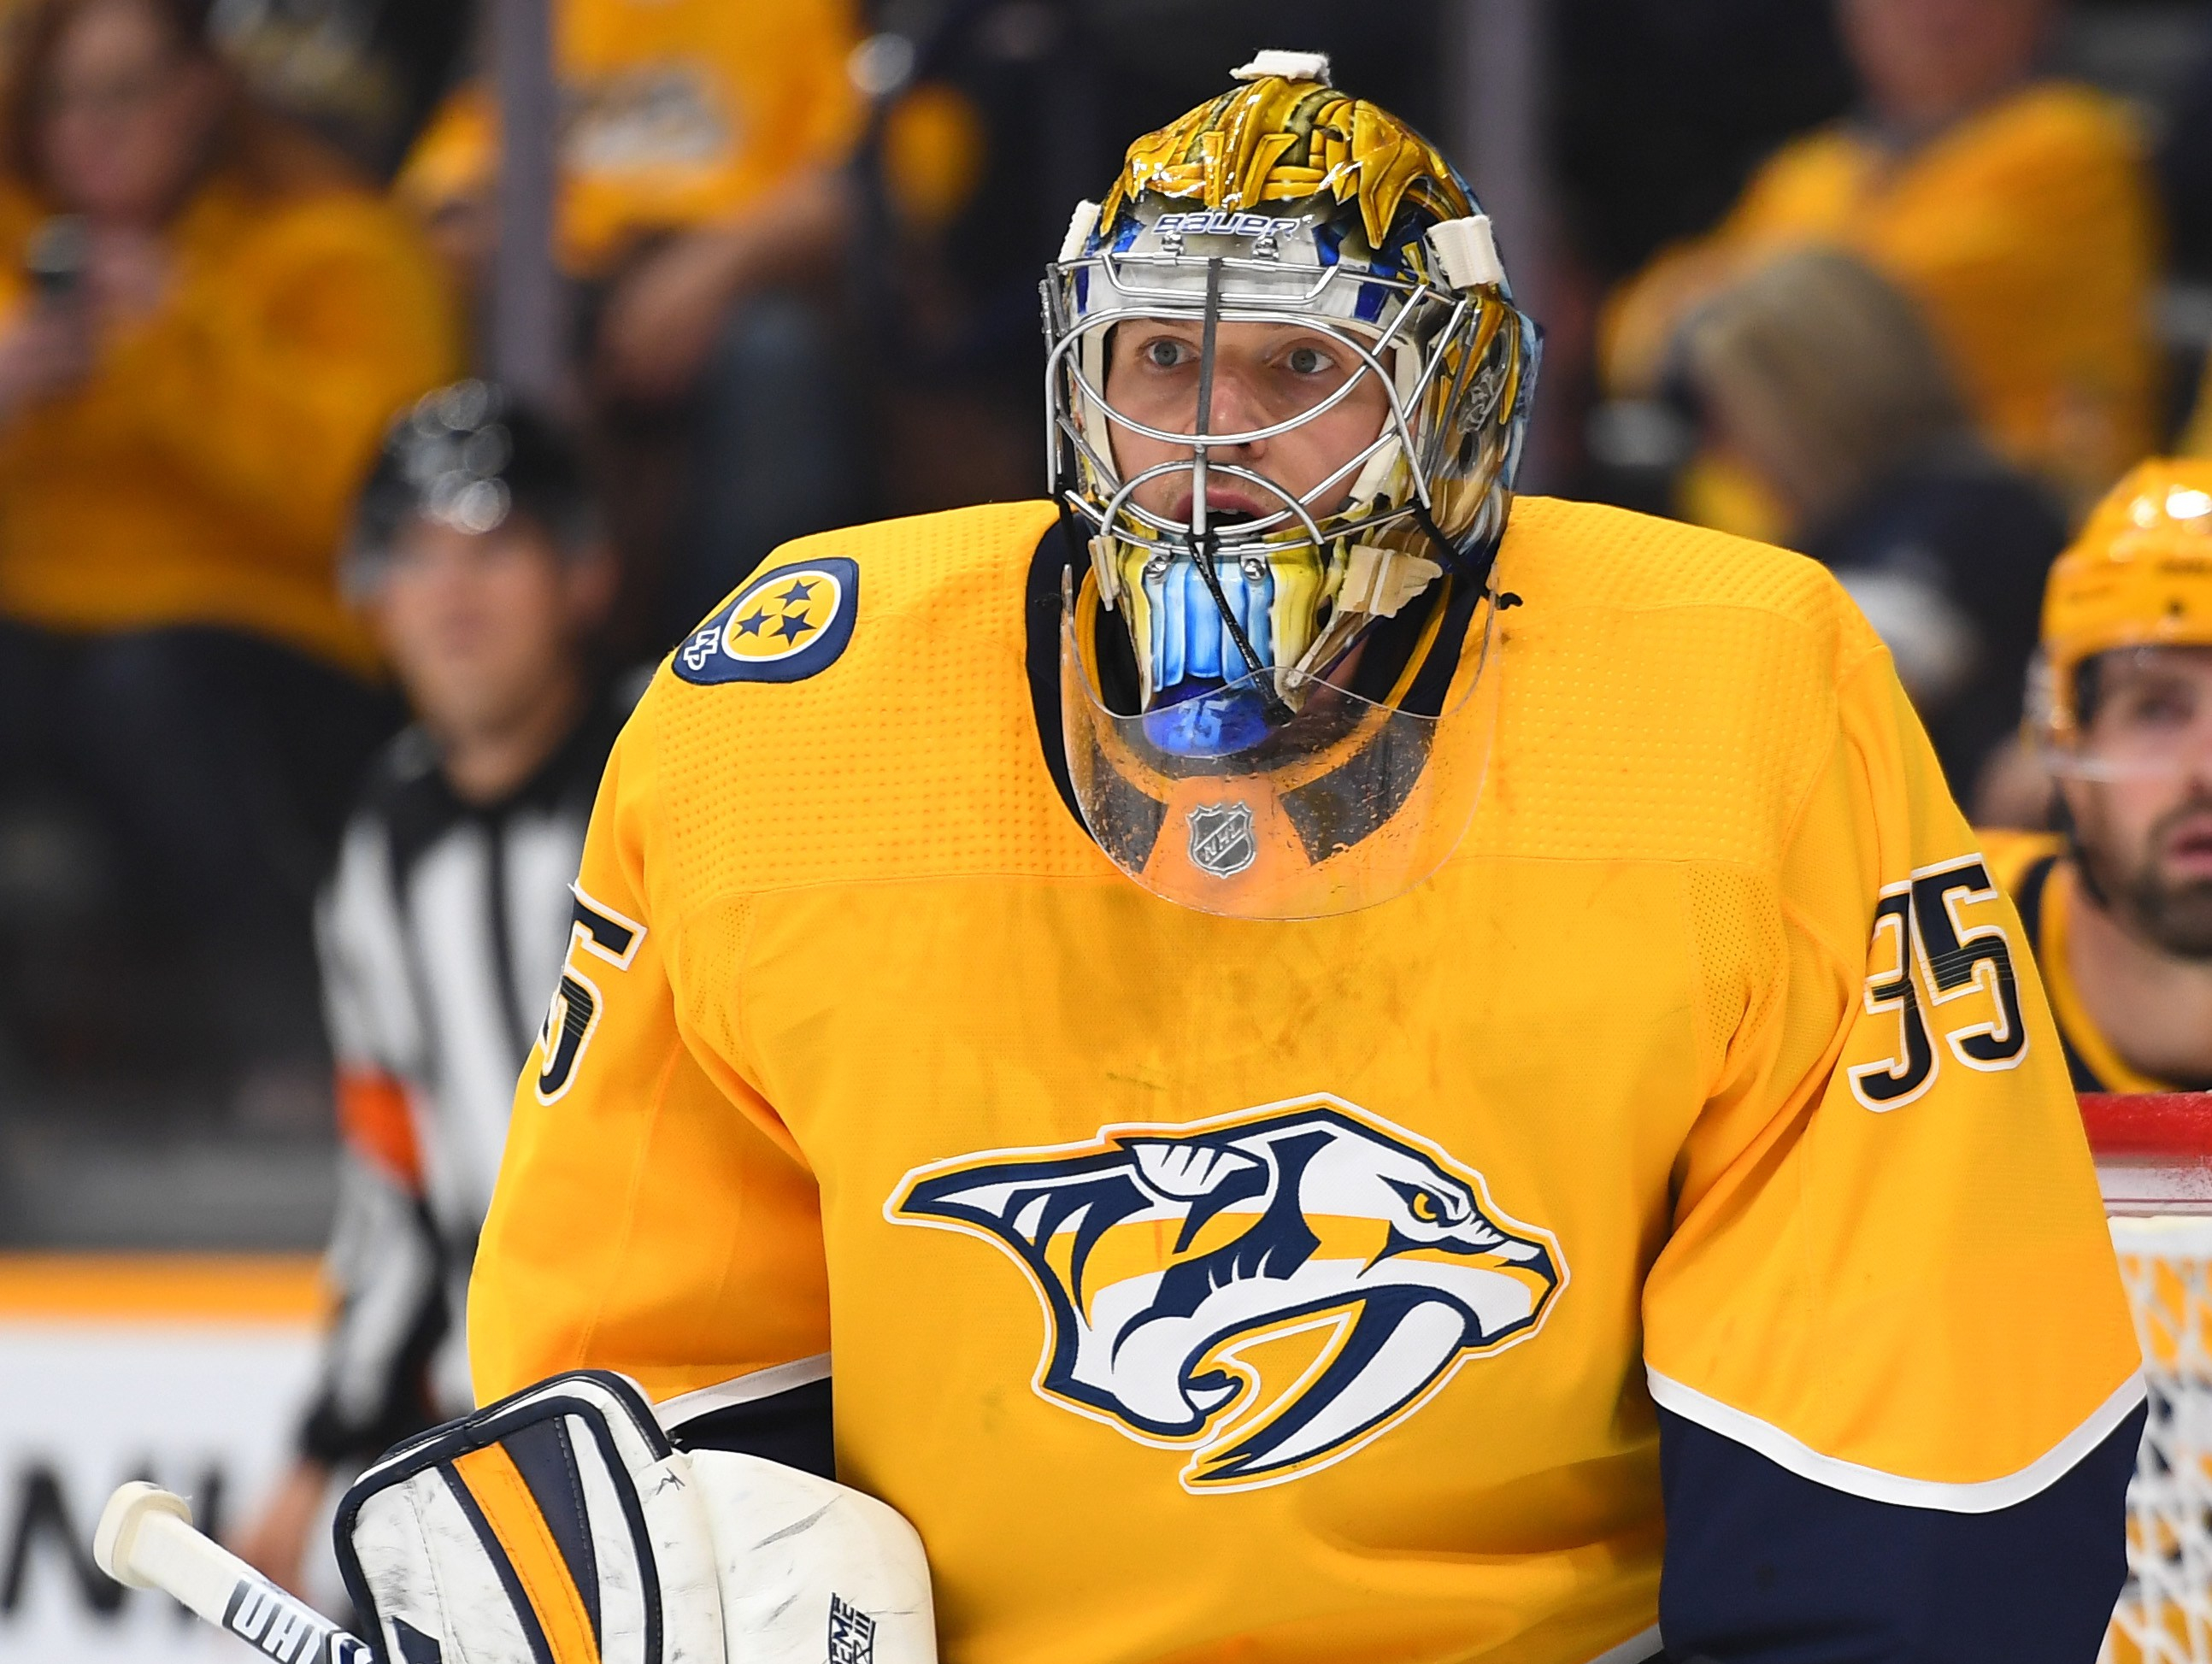 Pekka Rinne notches 59th career shutout